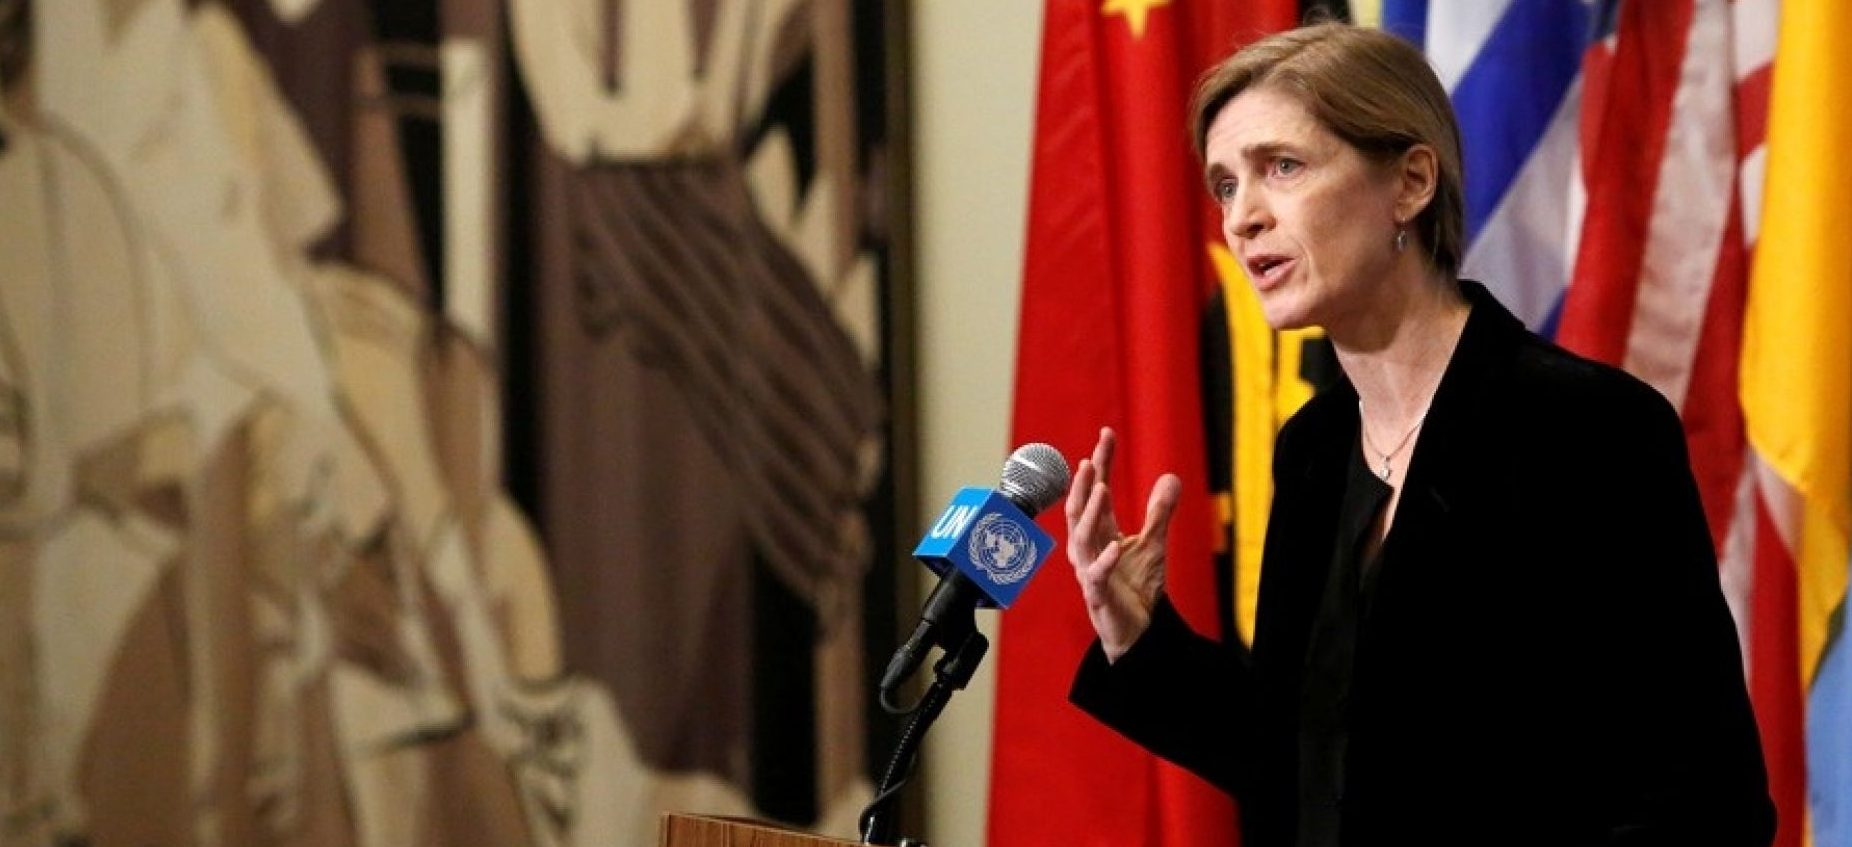 Samantha Power sought to unmask Americans on almost daily basis, sources say